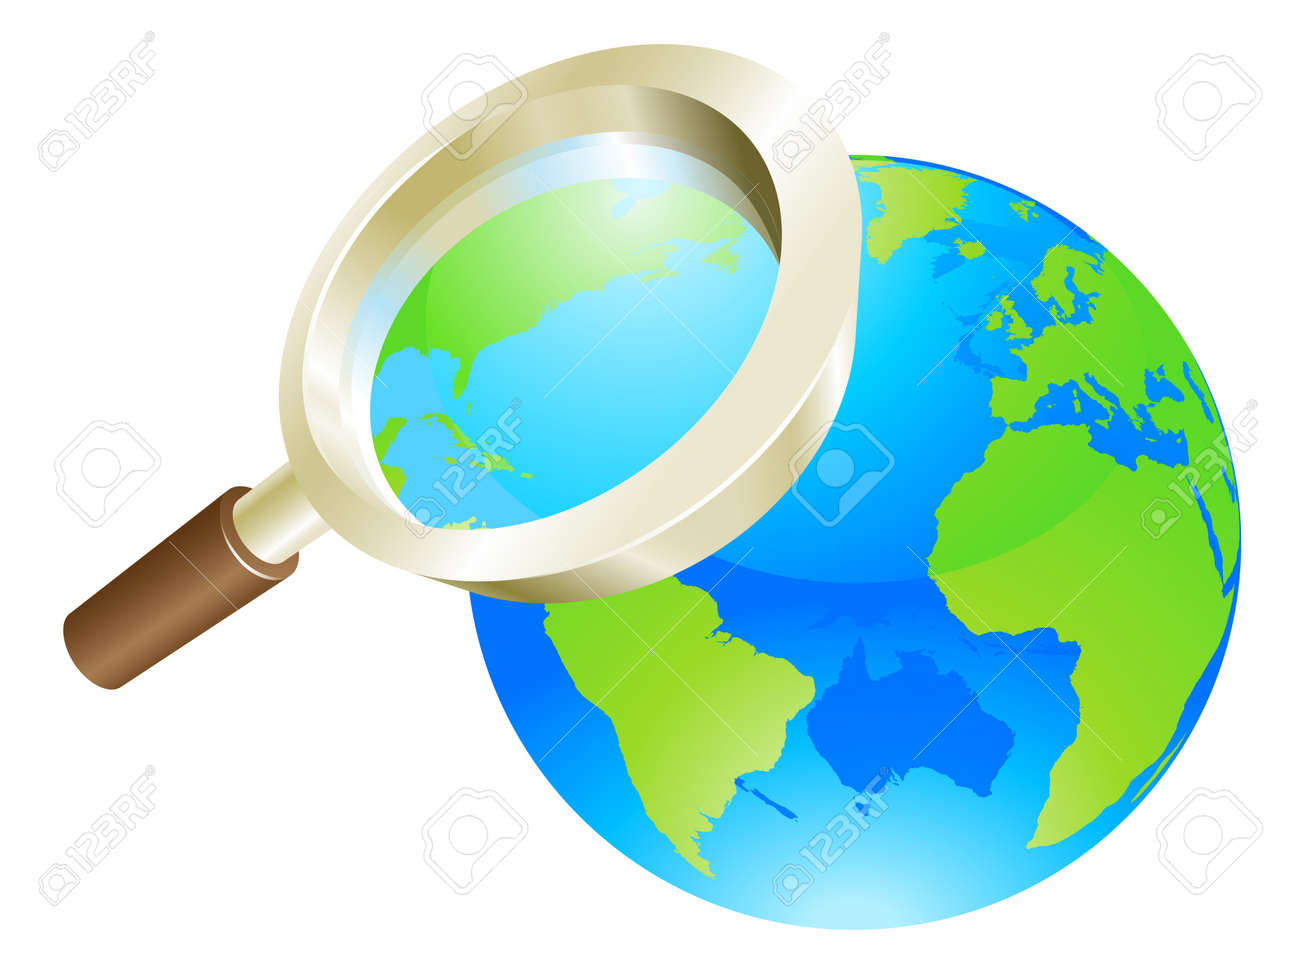 Magnifying glass zooming on world earth globe concept illustration Stock Vector - 11586603